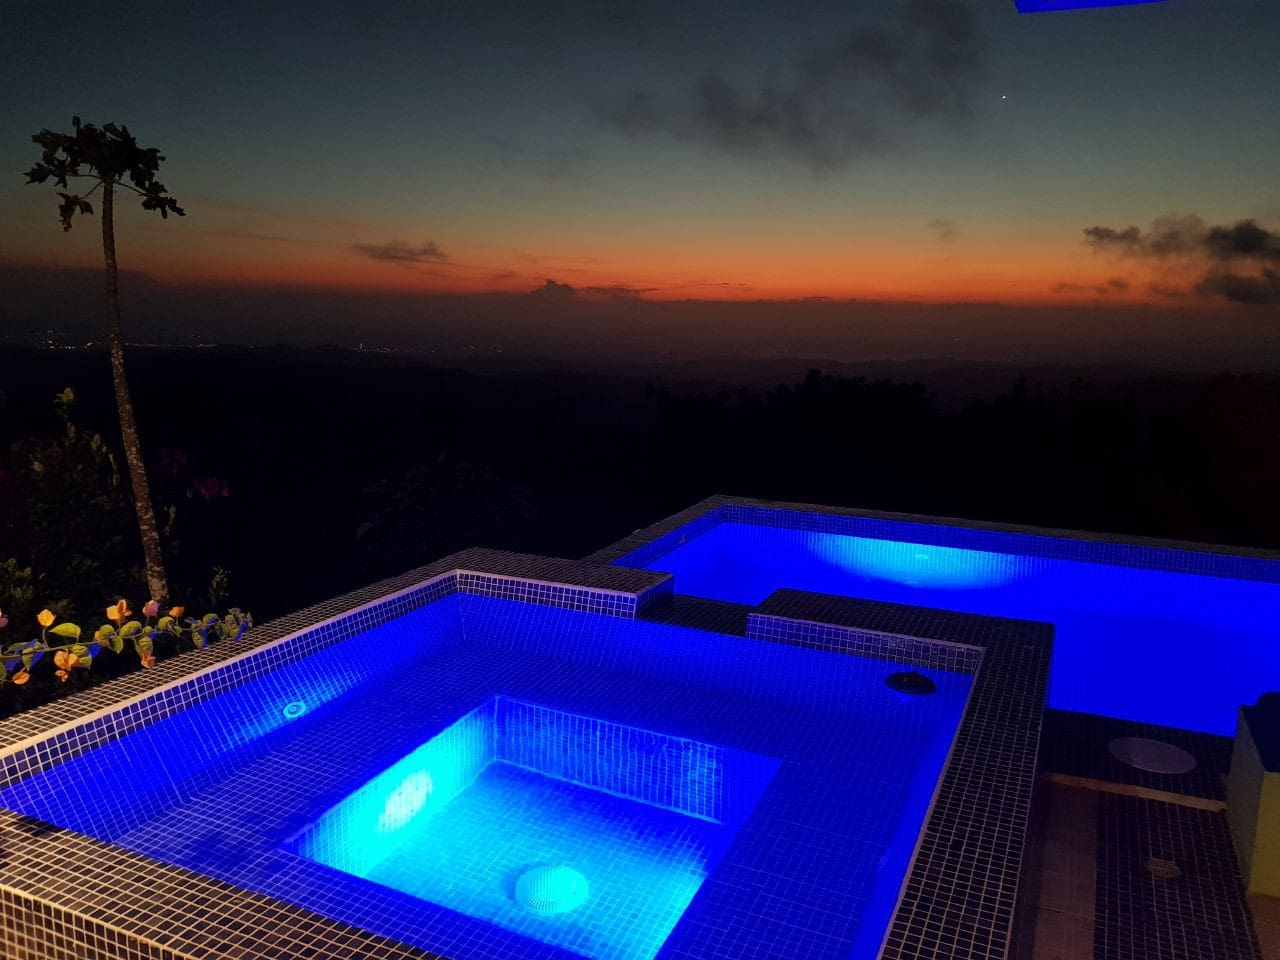 Hot Tub and Pool after an amazing sunset